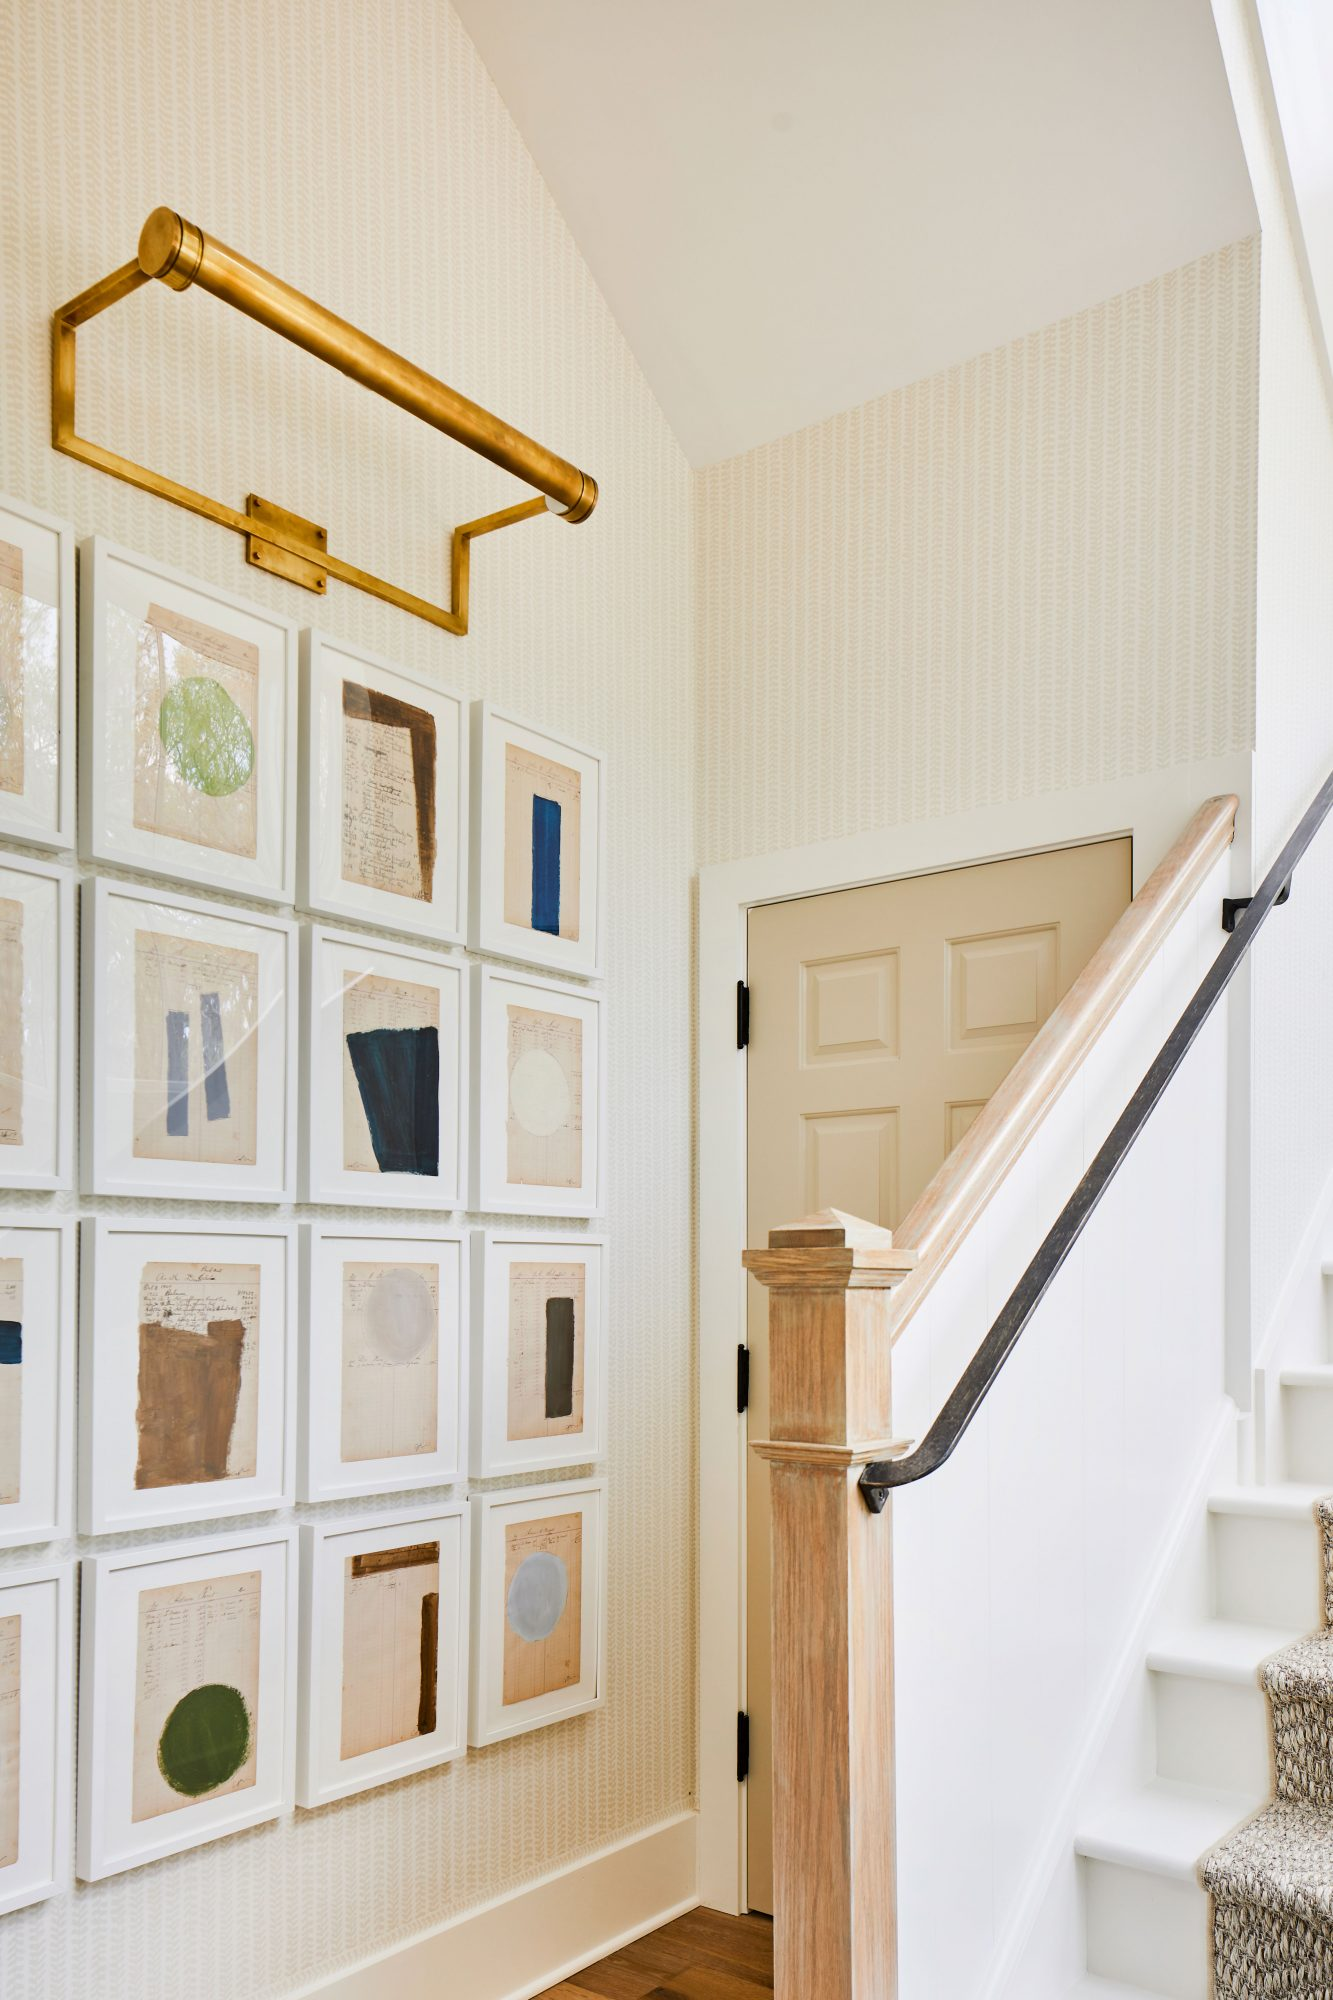 2019 Idea House Stair Gallery Wall